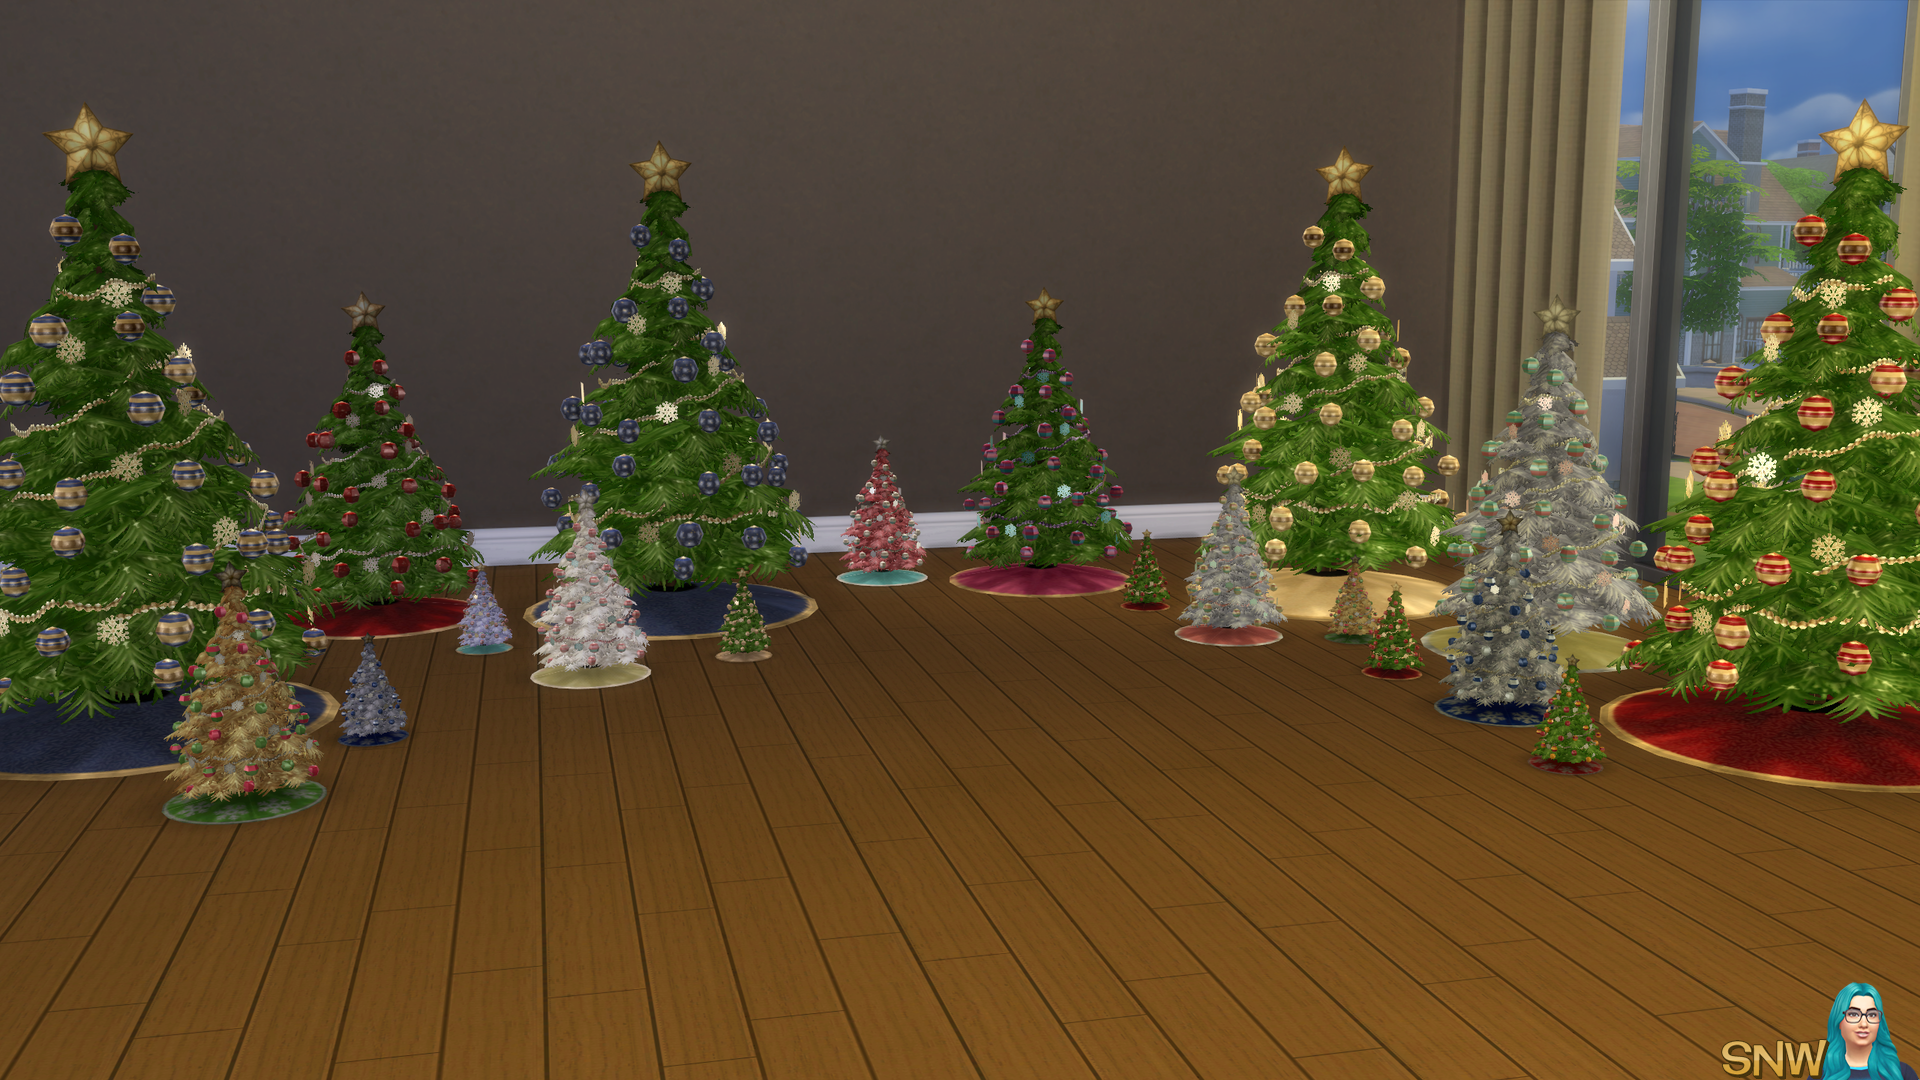 Christmas Trees 3 Sizes Snw Simsnetwork Com